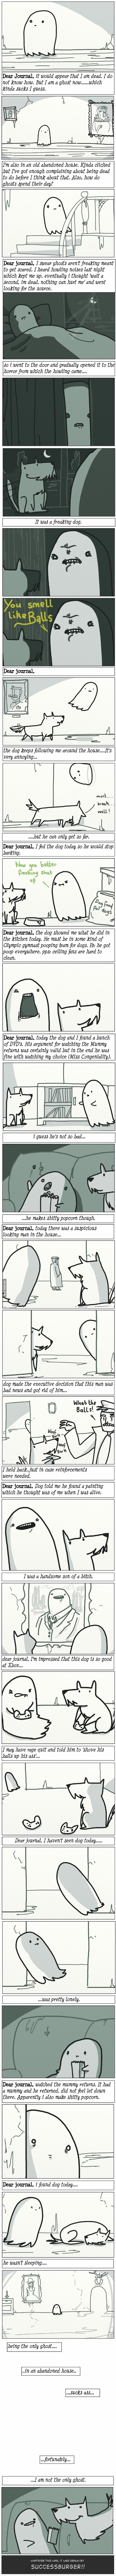 The Cutest Ghost Story Ever :D XD I DIED AT MOST PARTS